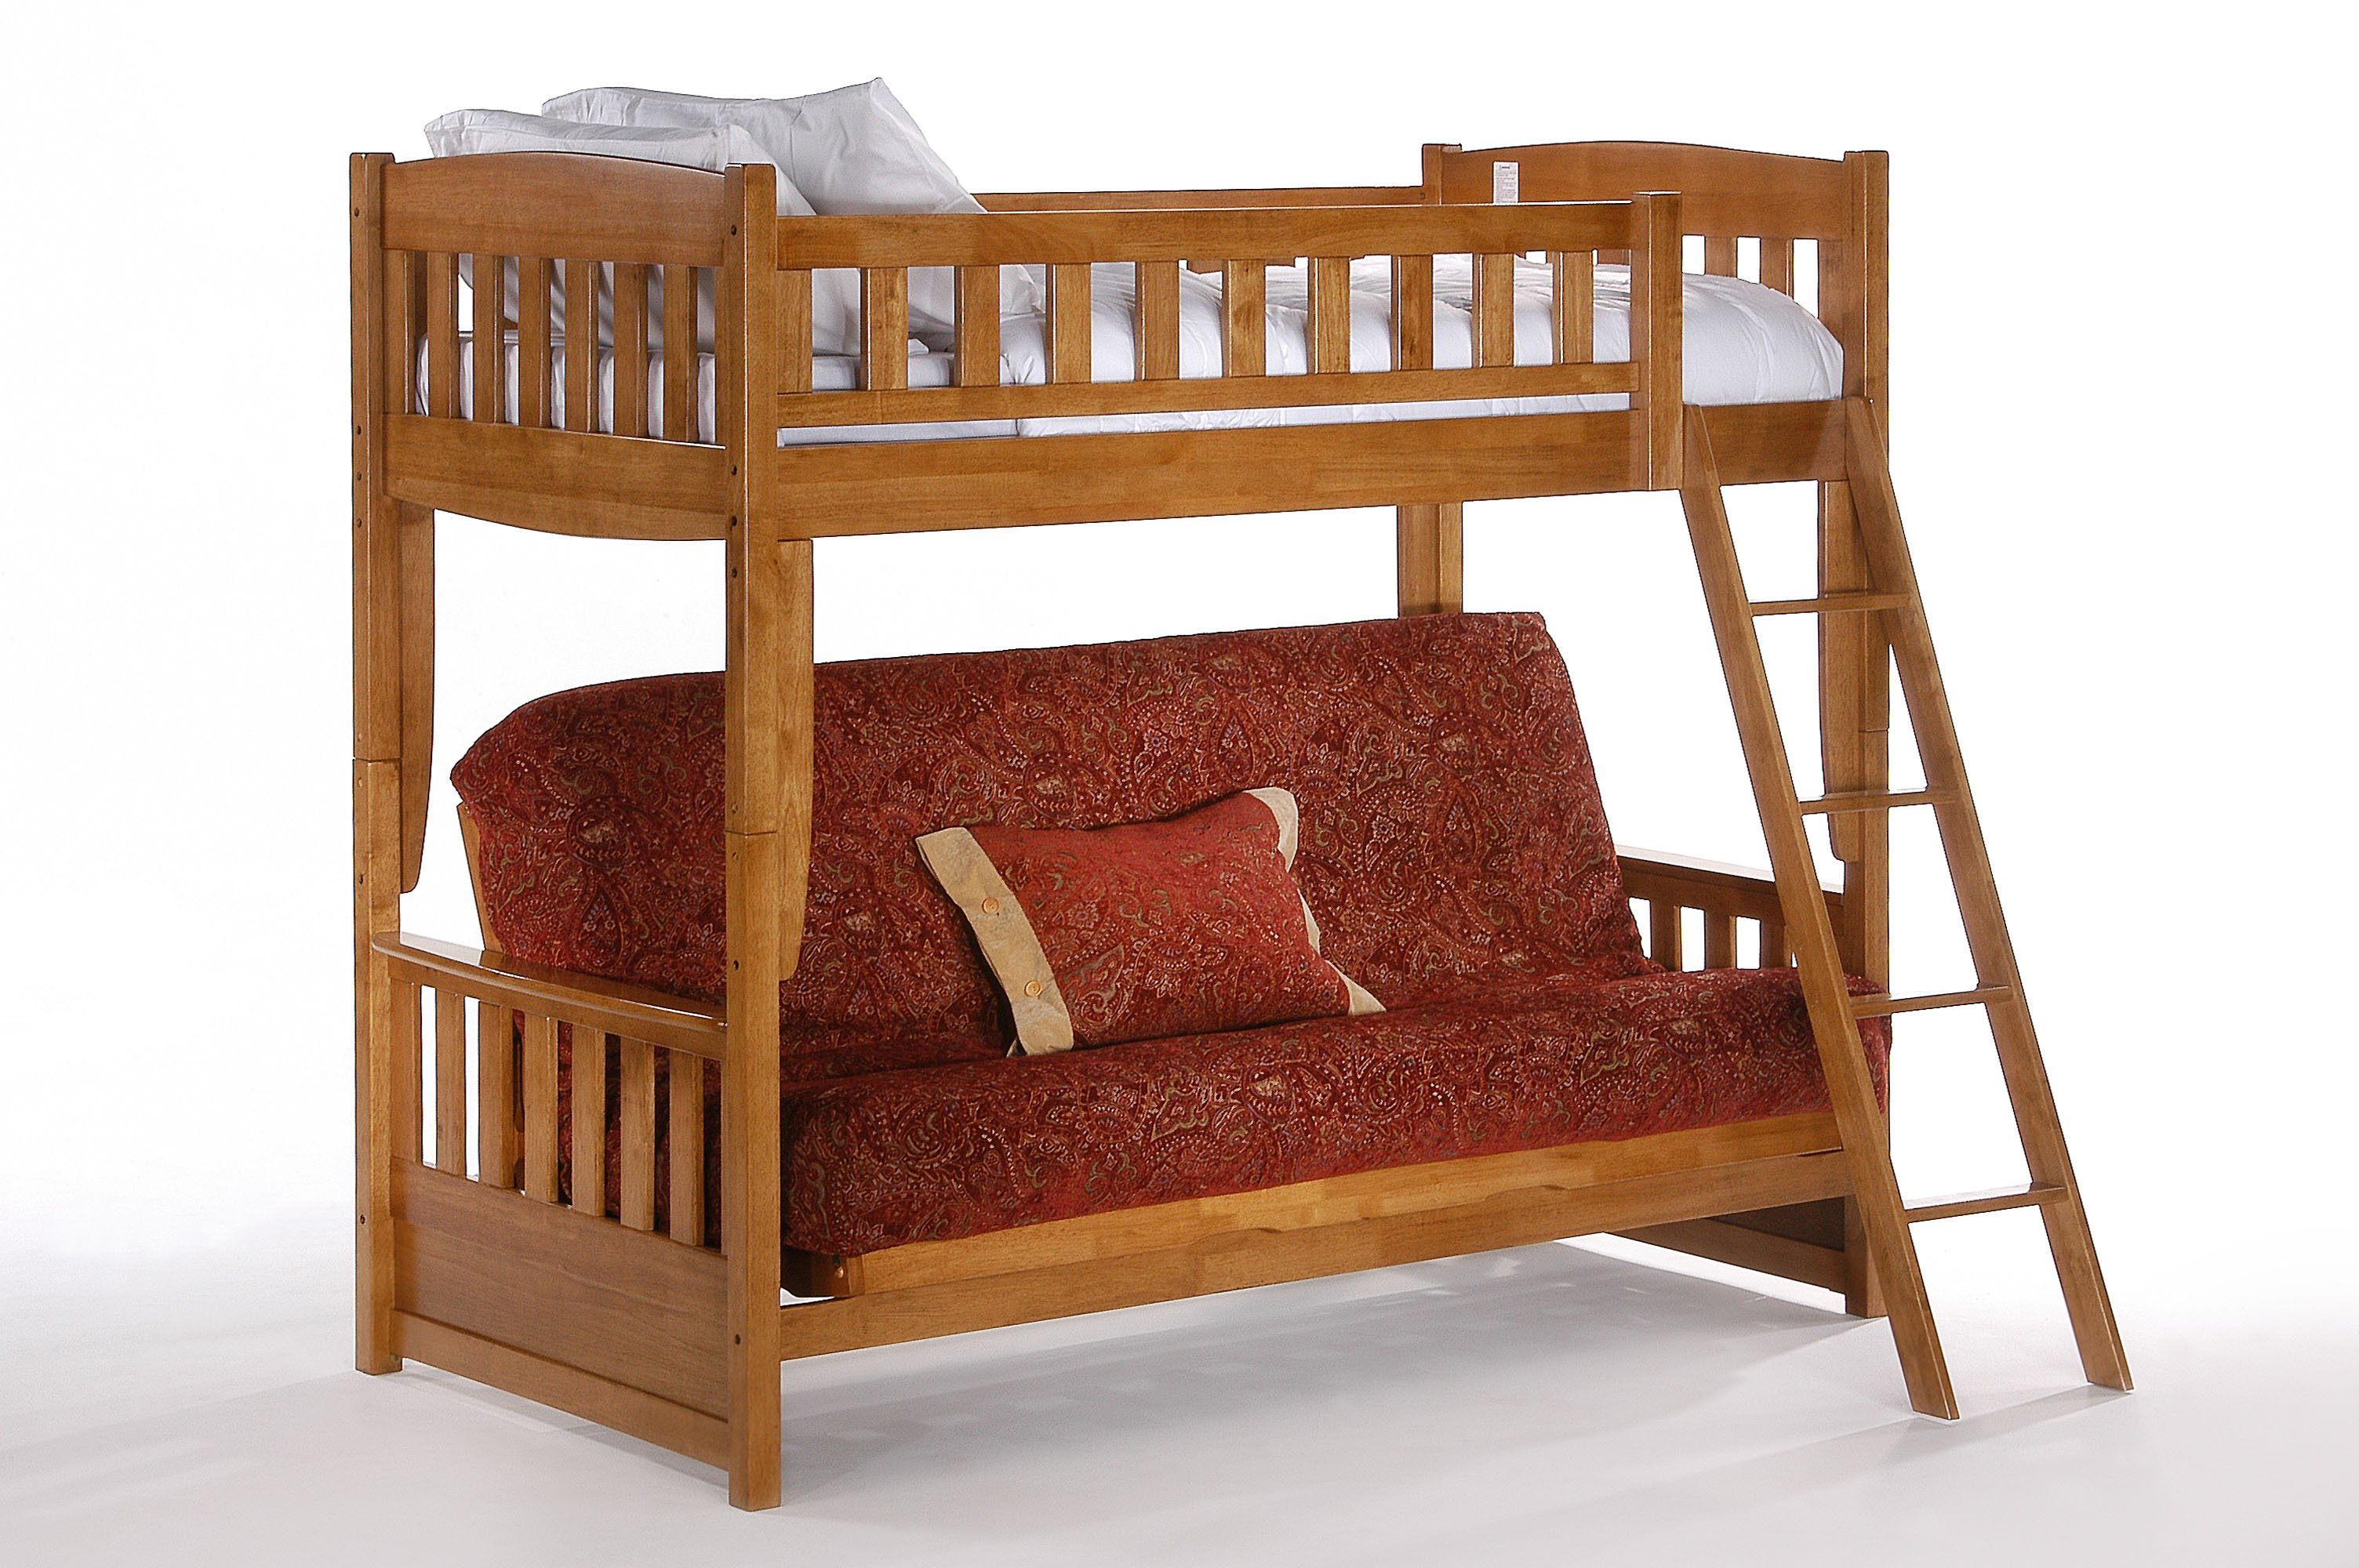 cheap houston photos daybed antonio of furniture futon throughout awesome mattress shop modern futons beds styles san